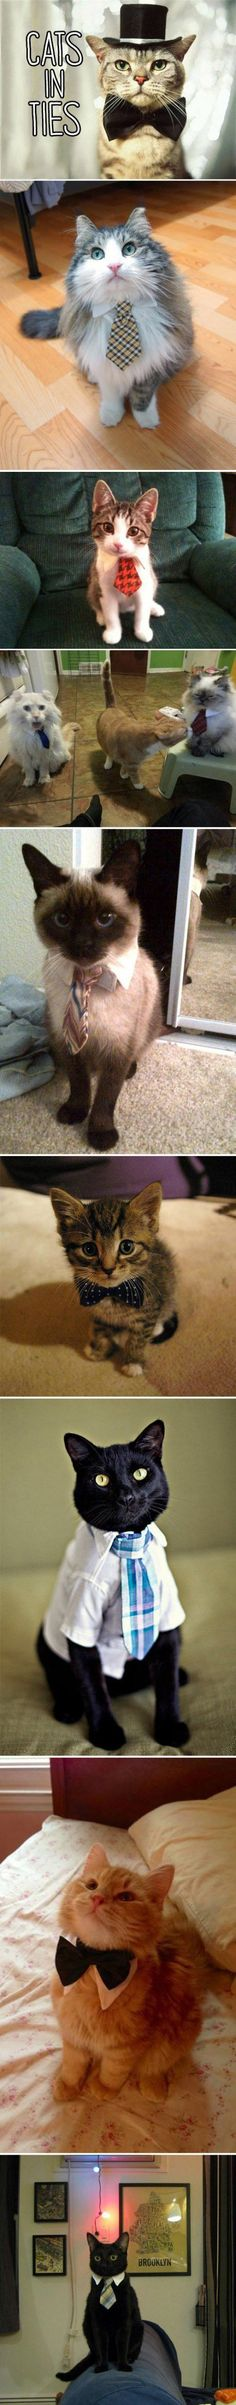 cats...in neckties!